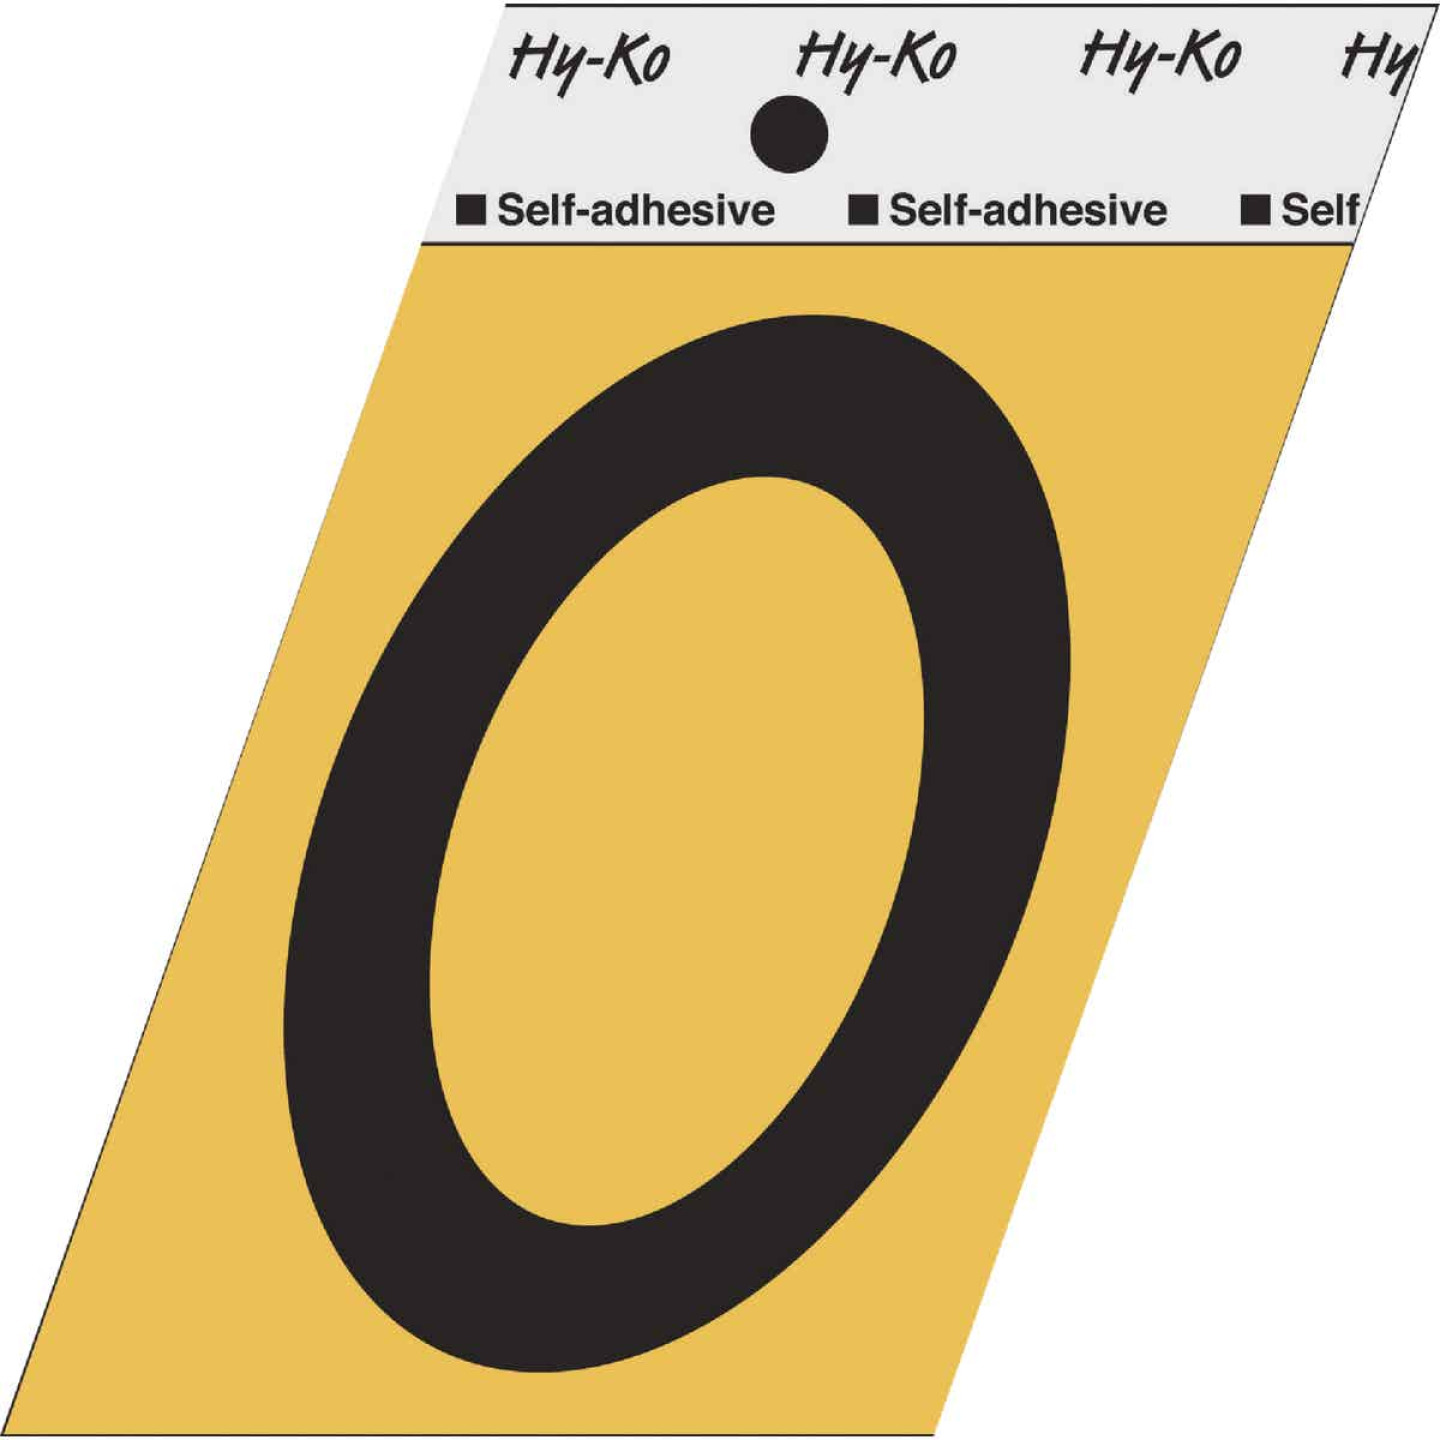 Hy-Ko Aluminum 3-1/2 In. Non-Reflective Adhesive Number Zero Image 1